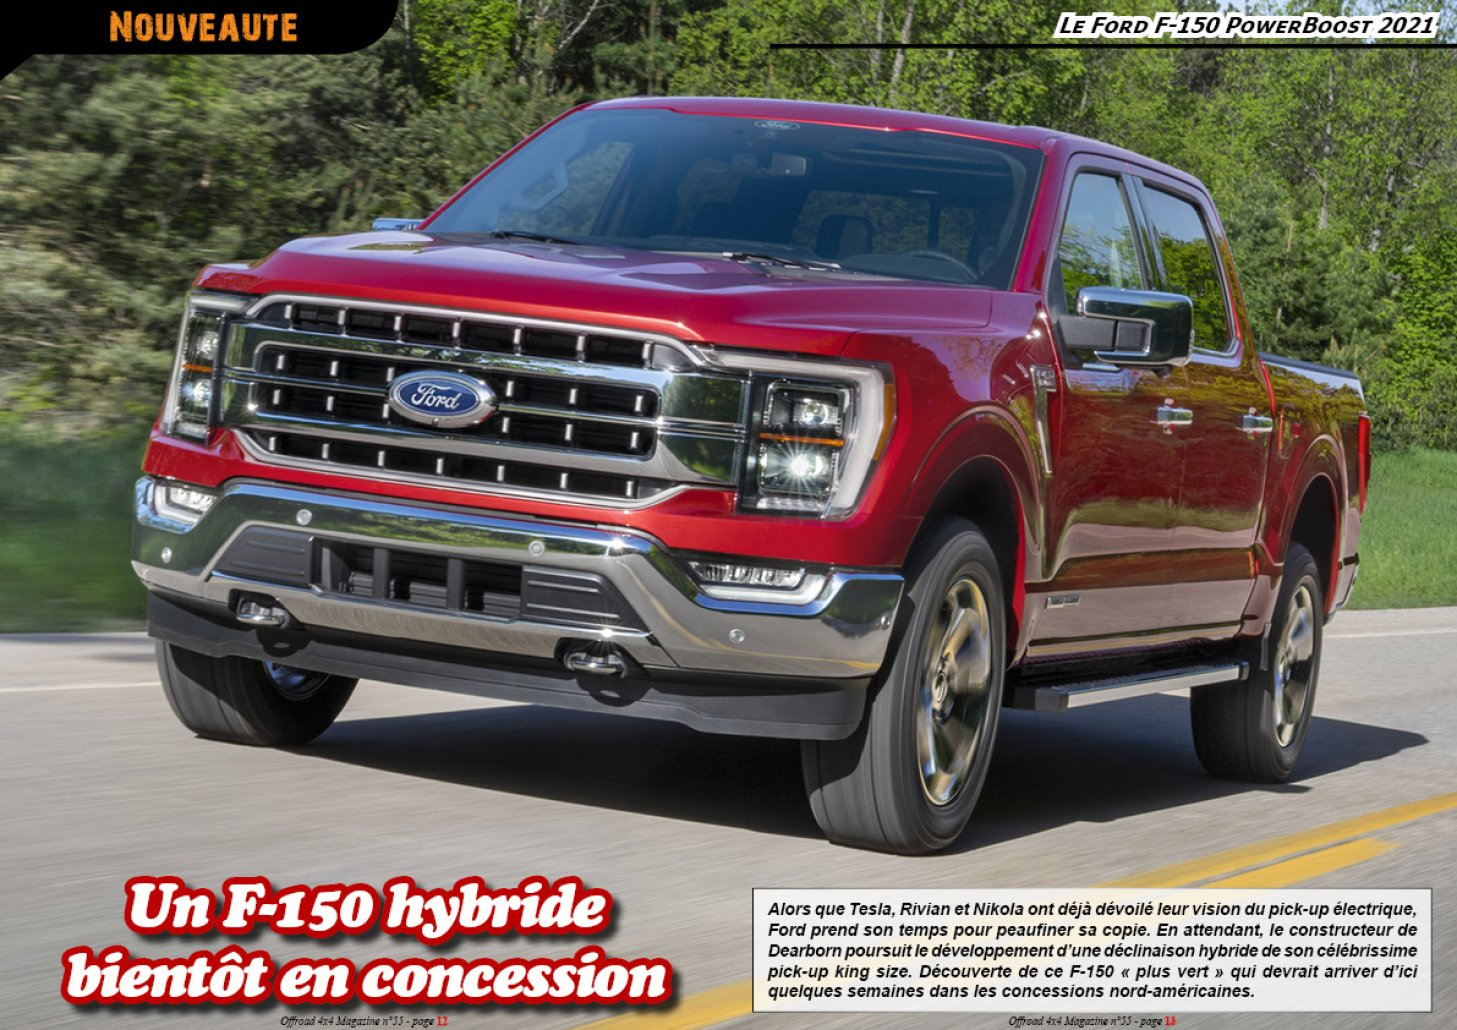 Le Ford F-150 PowerBoost 2021